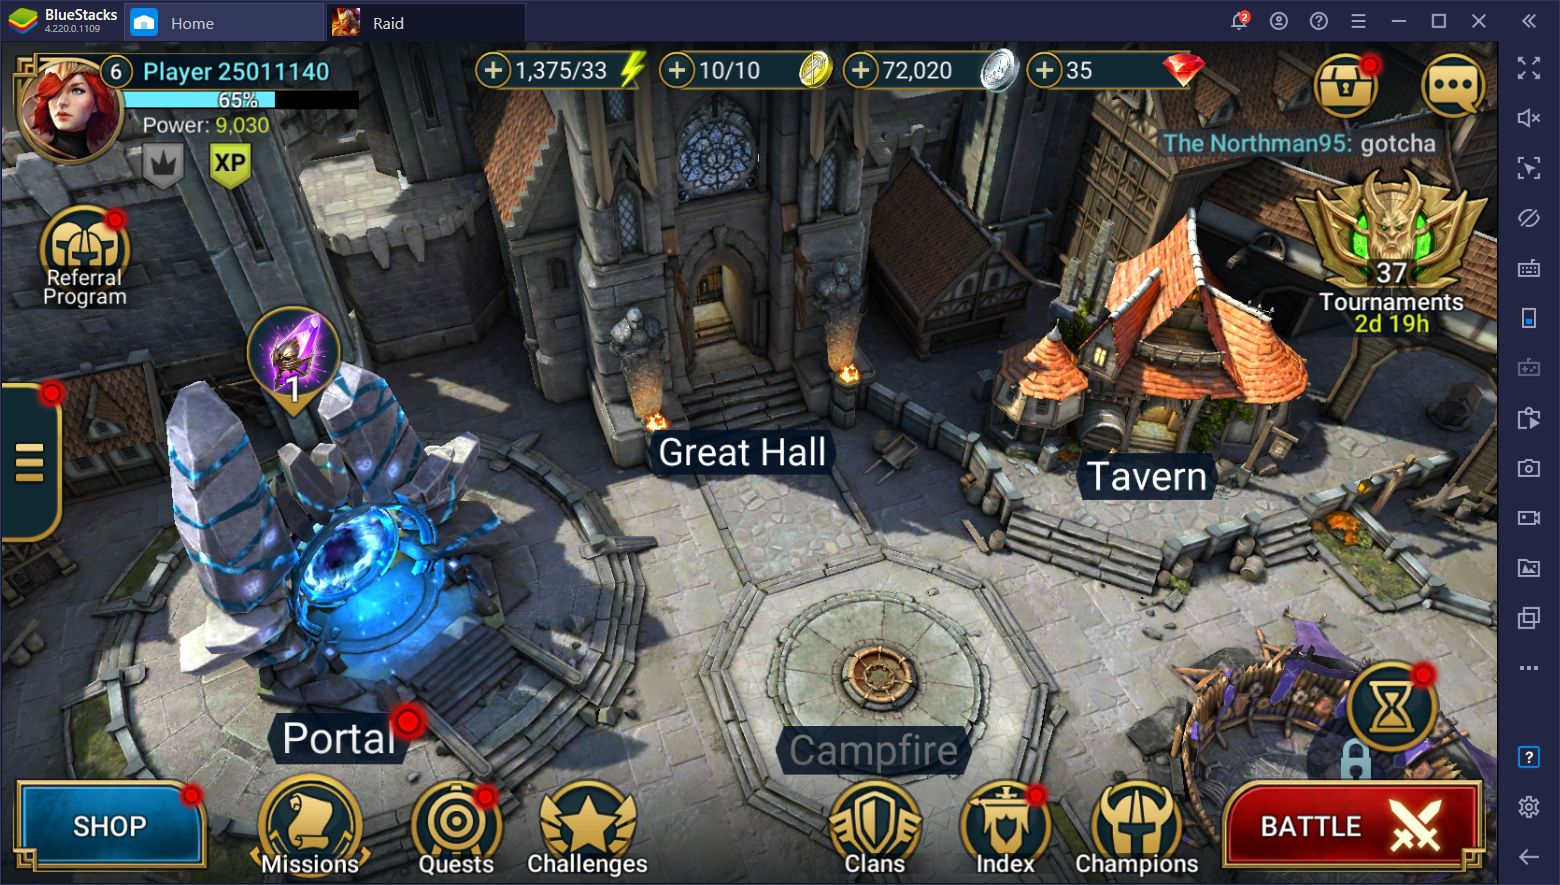 RAID: Shadow Legends – How to Farm XP, Silver, and Every Other Resource